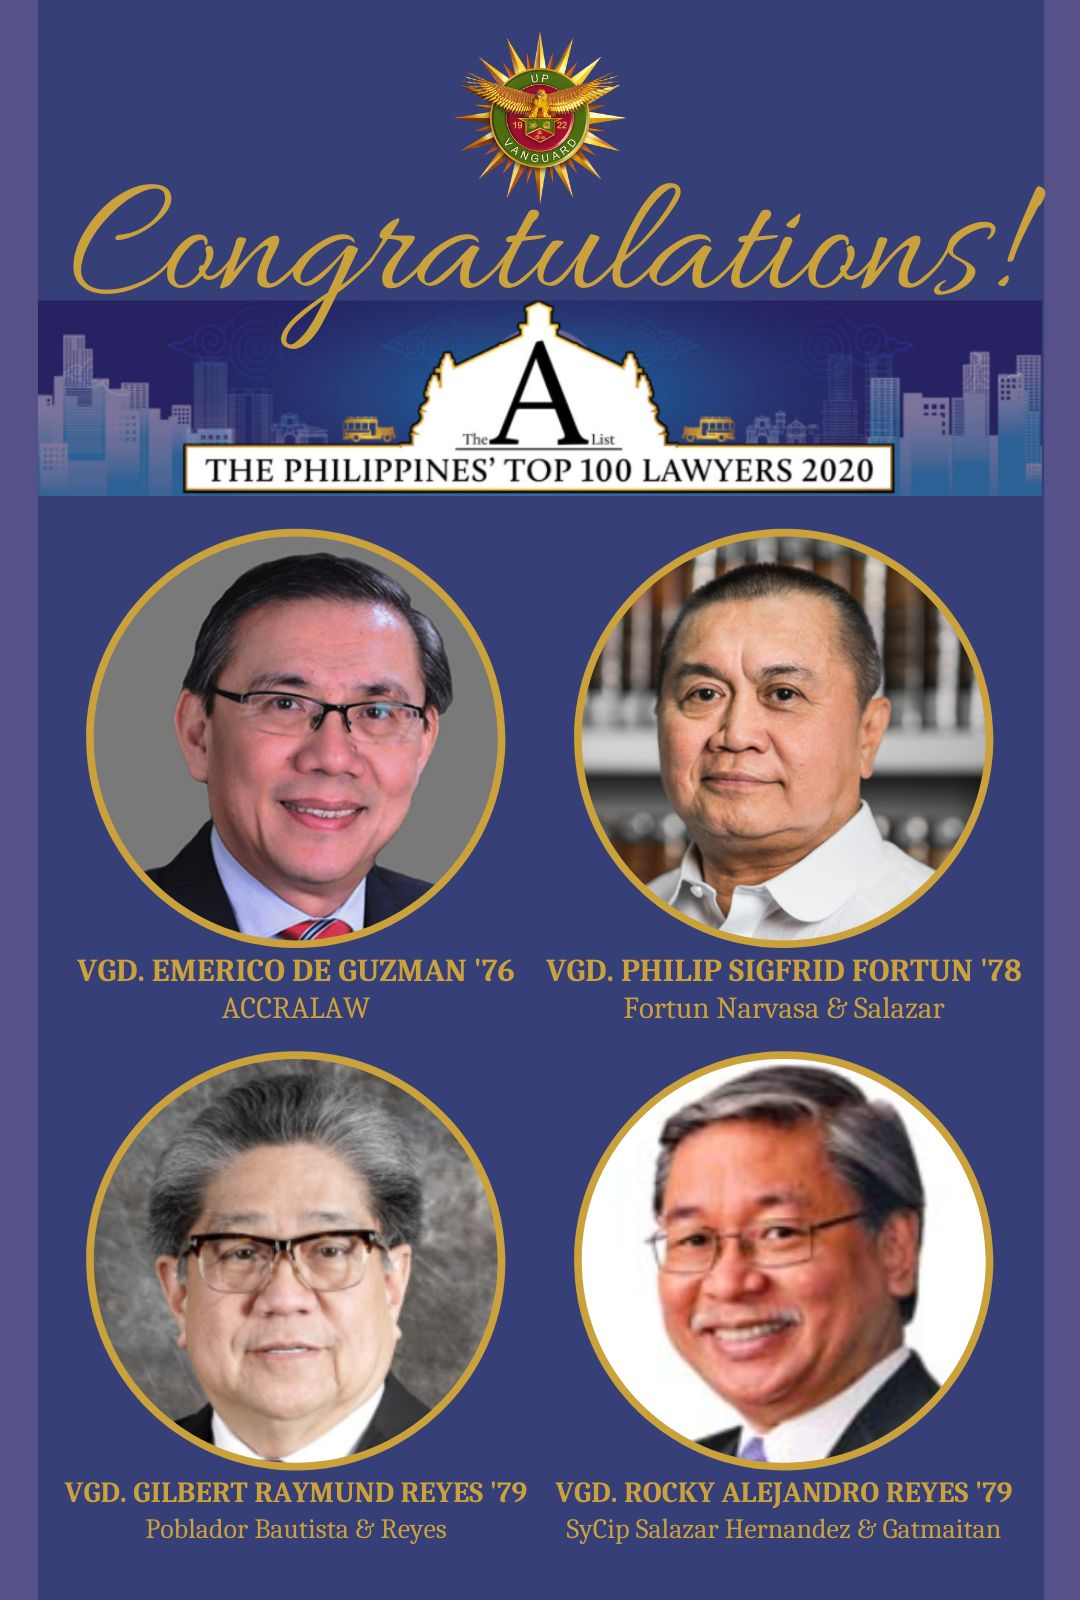 The Philippines Top 100 Lawyers 2020